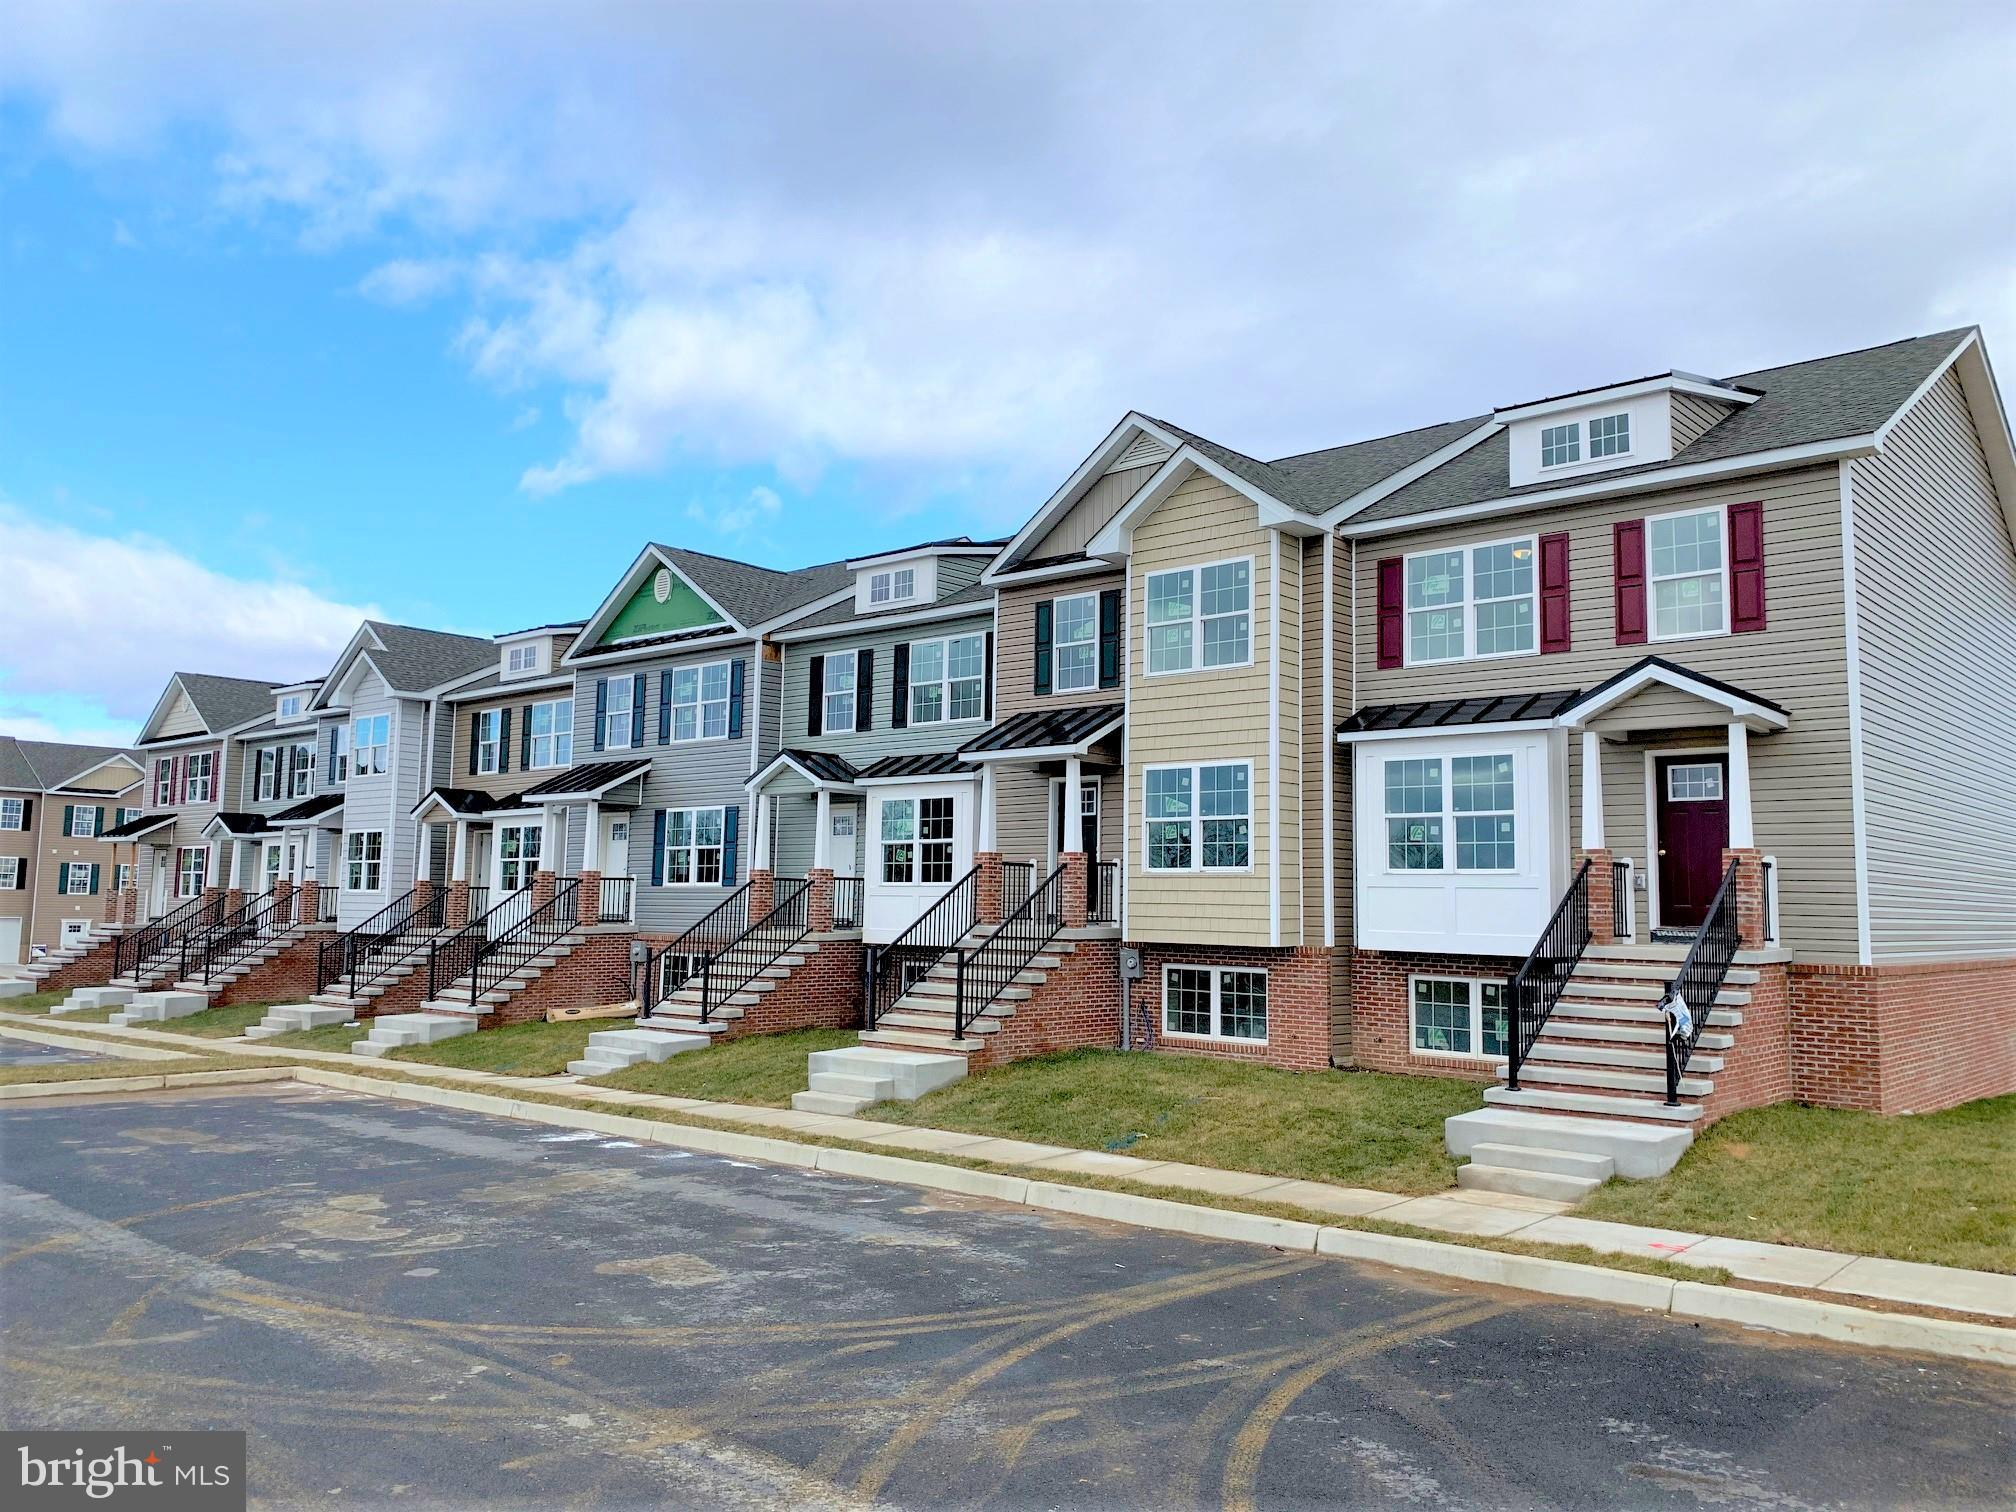 Free Deck with all contracts ratified by September 30th...New section of Town Homes under constructi